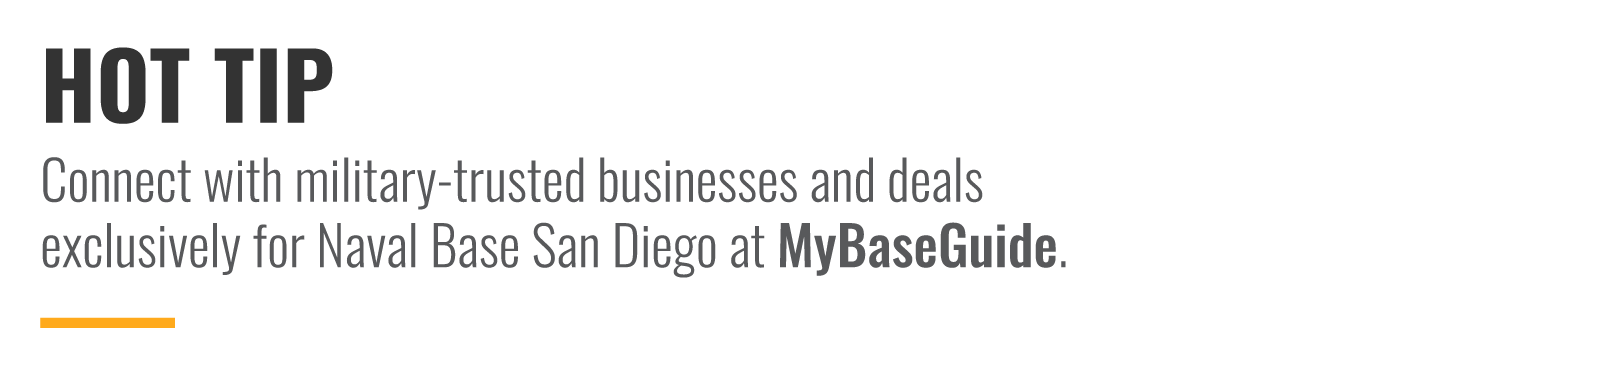 Connect with military-trusted businesses and deals exclusively MyBaseGuide